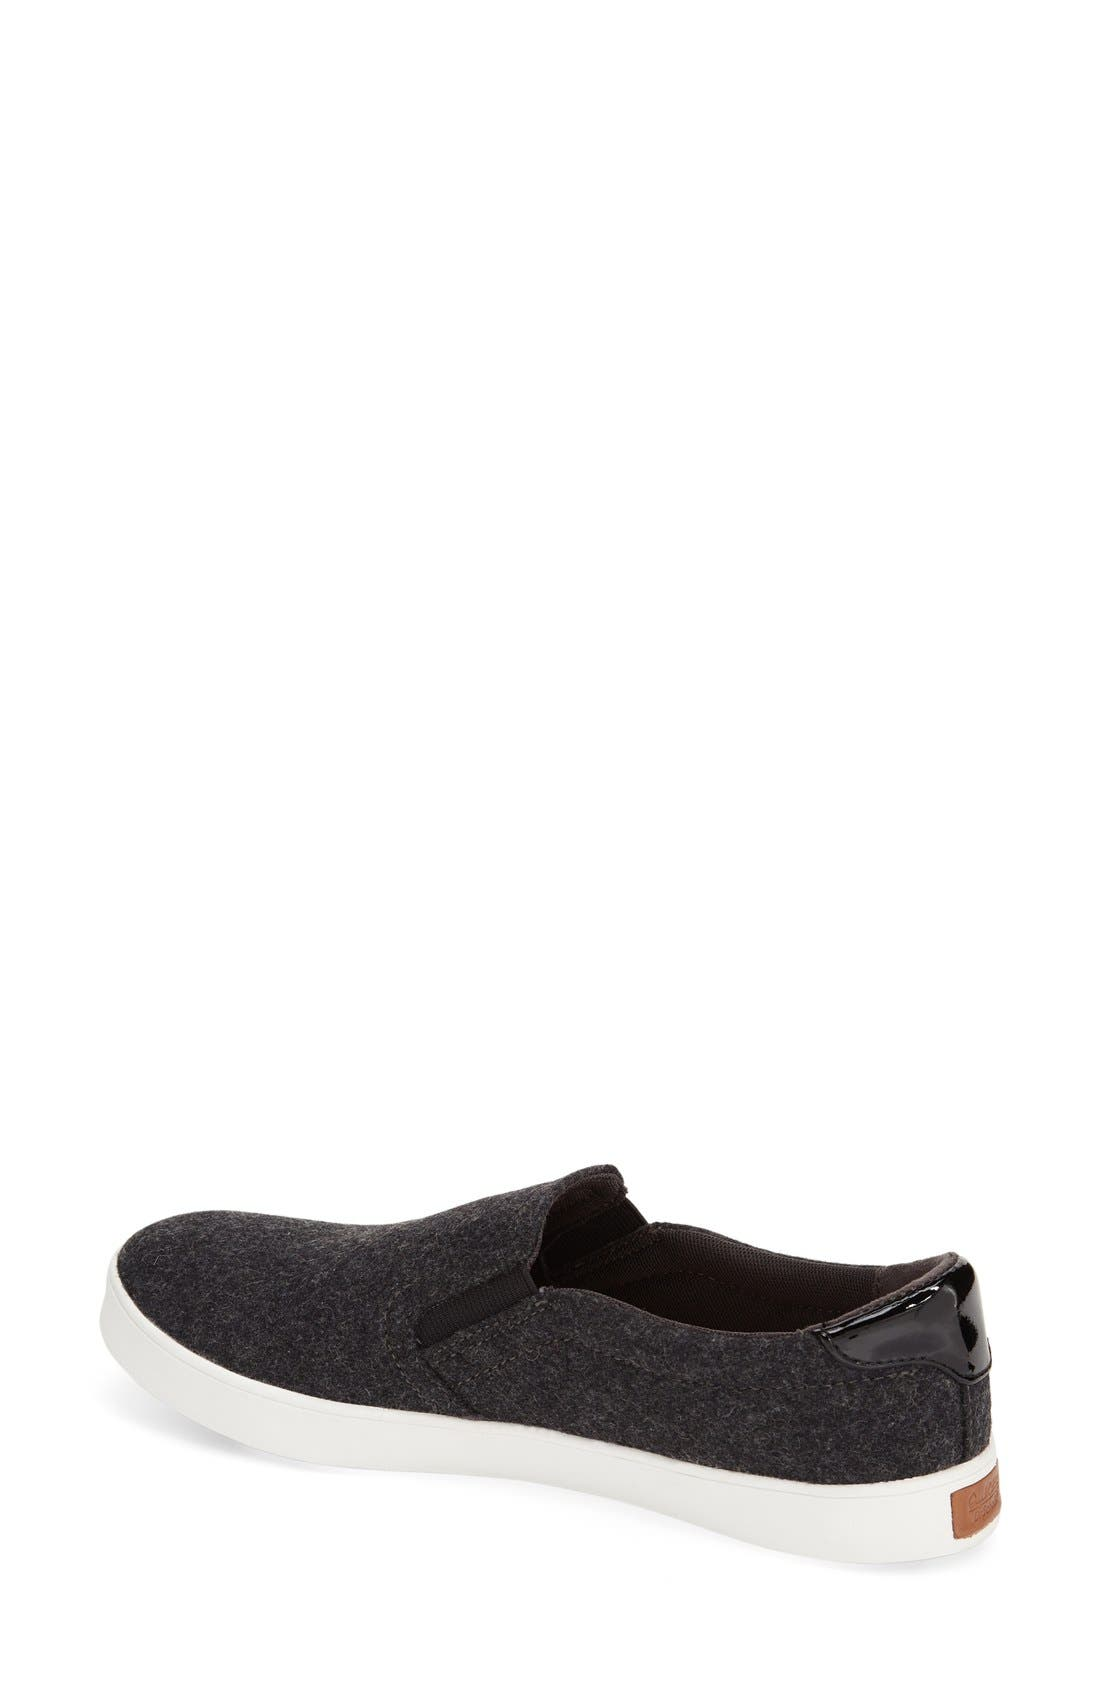 Original Collection 'Scout' Slip On Sneaker,                             Alternate thumbnail 50, color,